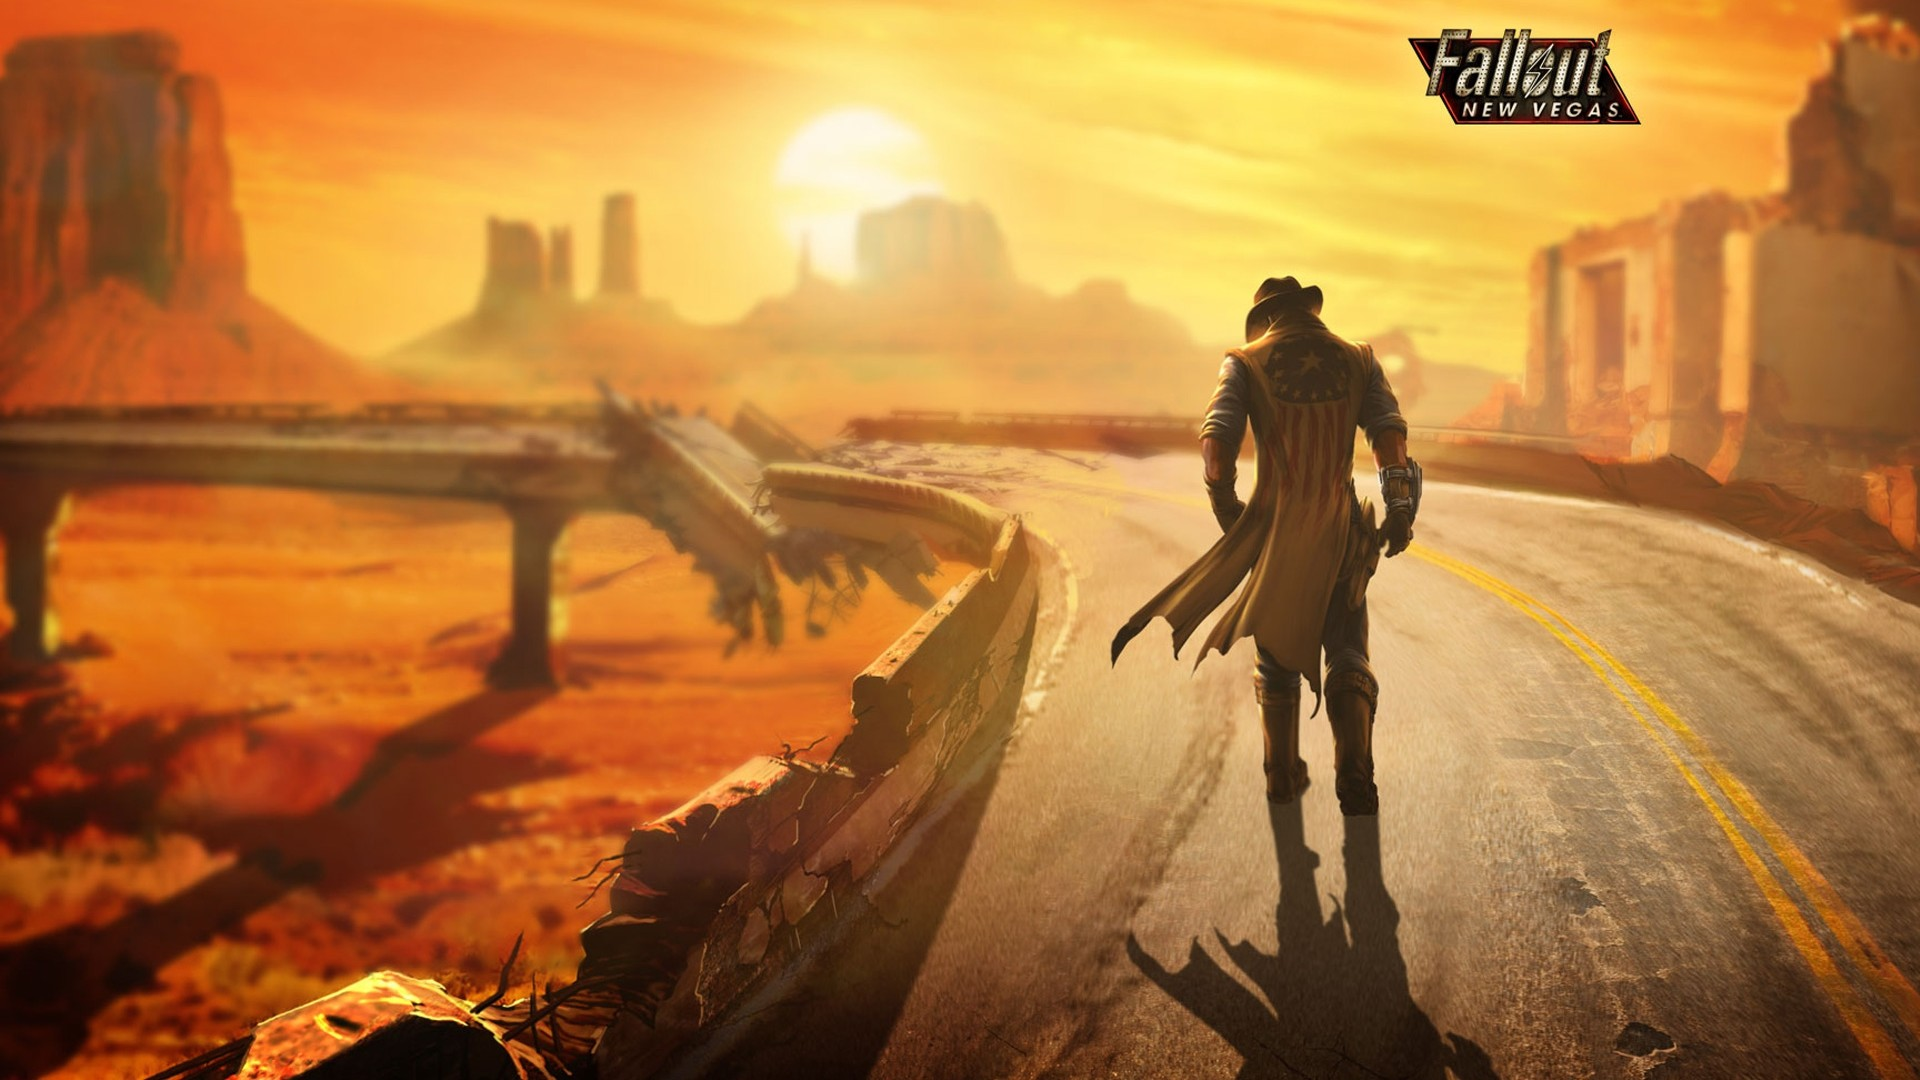 Res: 1920x1080, Fallout A New Vegas Game Beautiful Wallpapers 2015 ...